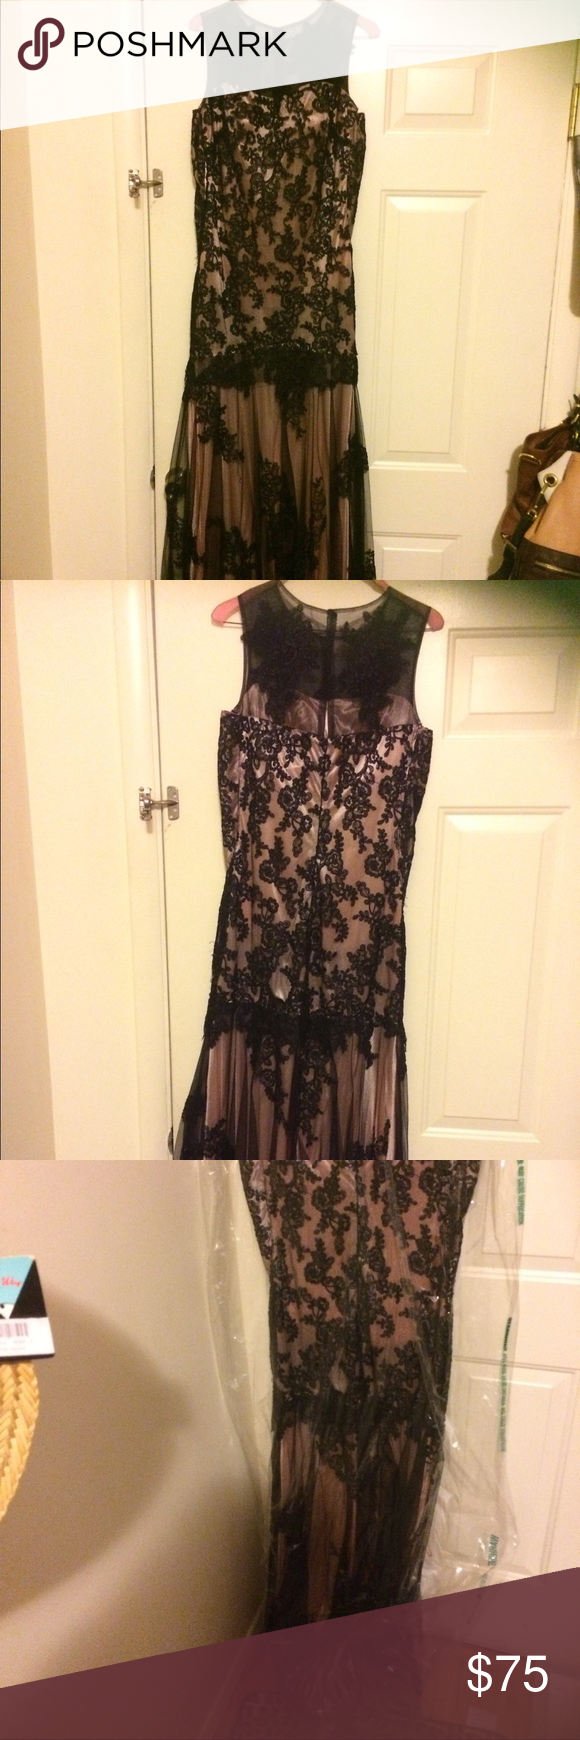 D.R.E.S.S size 7/8 dress! Great for